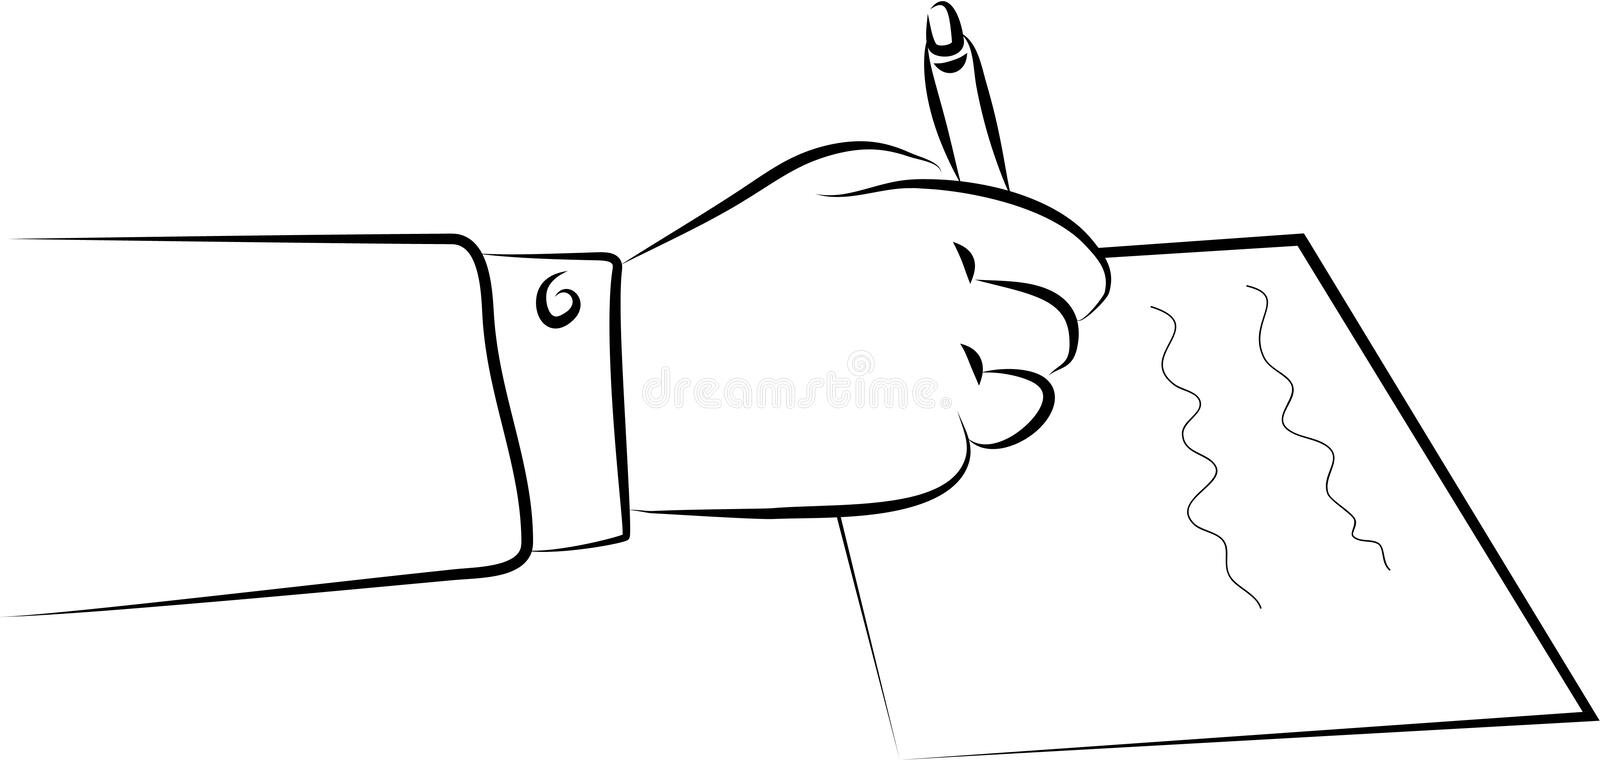 Signing a document. A hand signing a document or writing a letter vector illustration